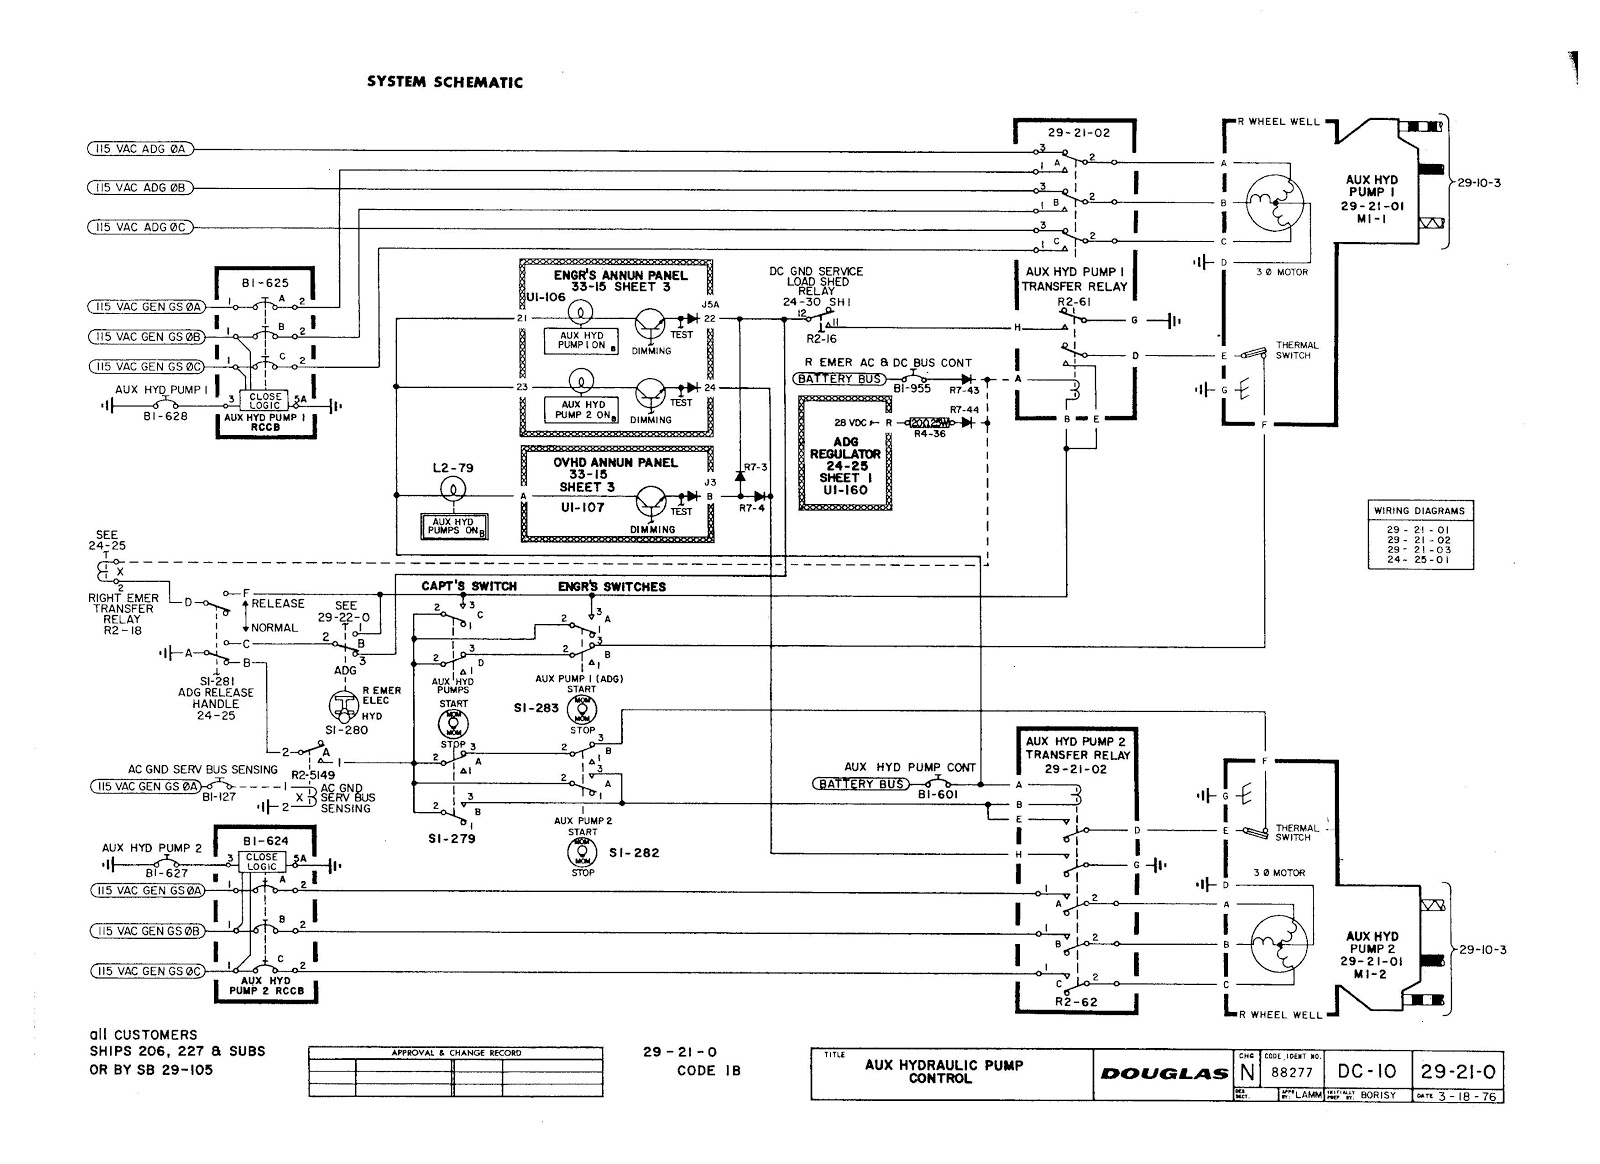 medium resolution of schematic diagram dc10 hydraulic system